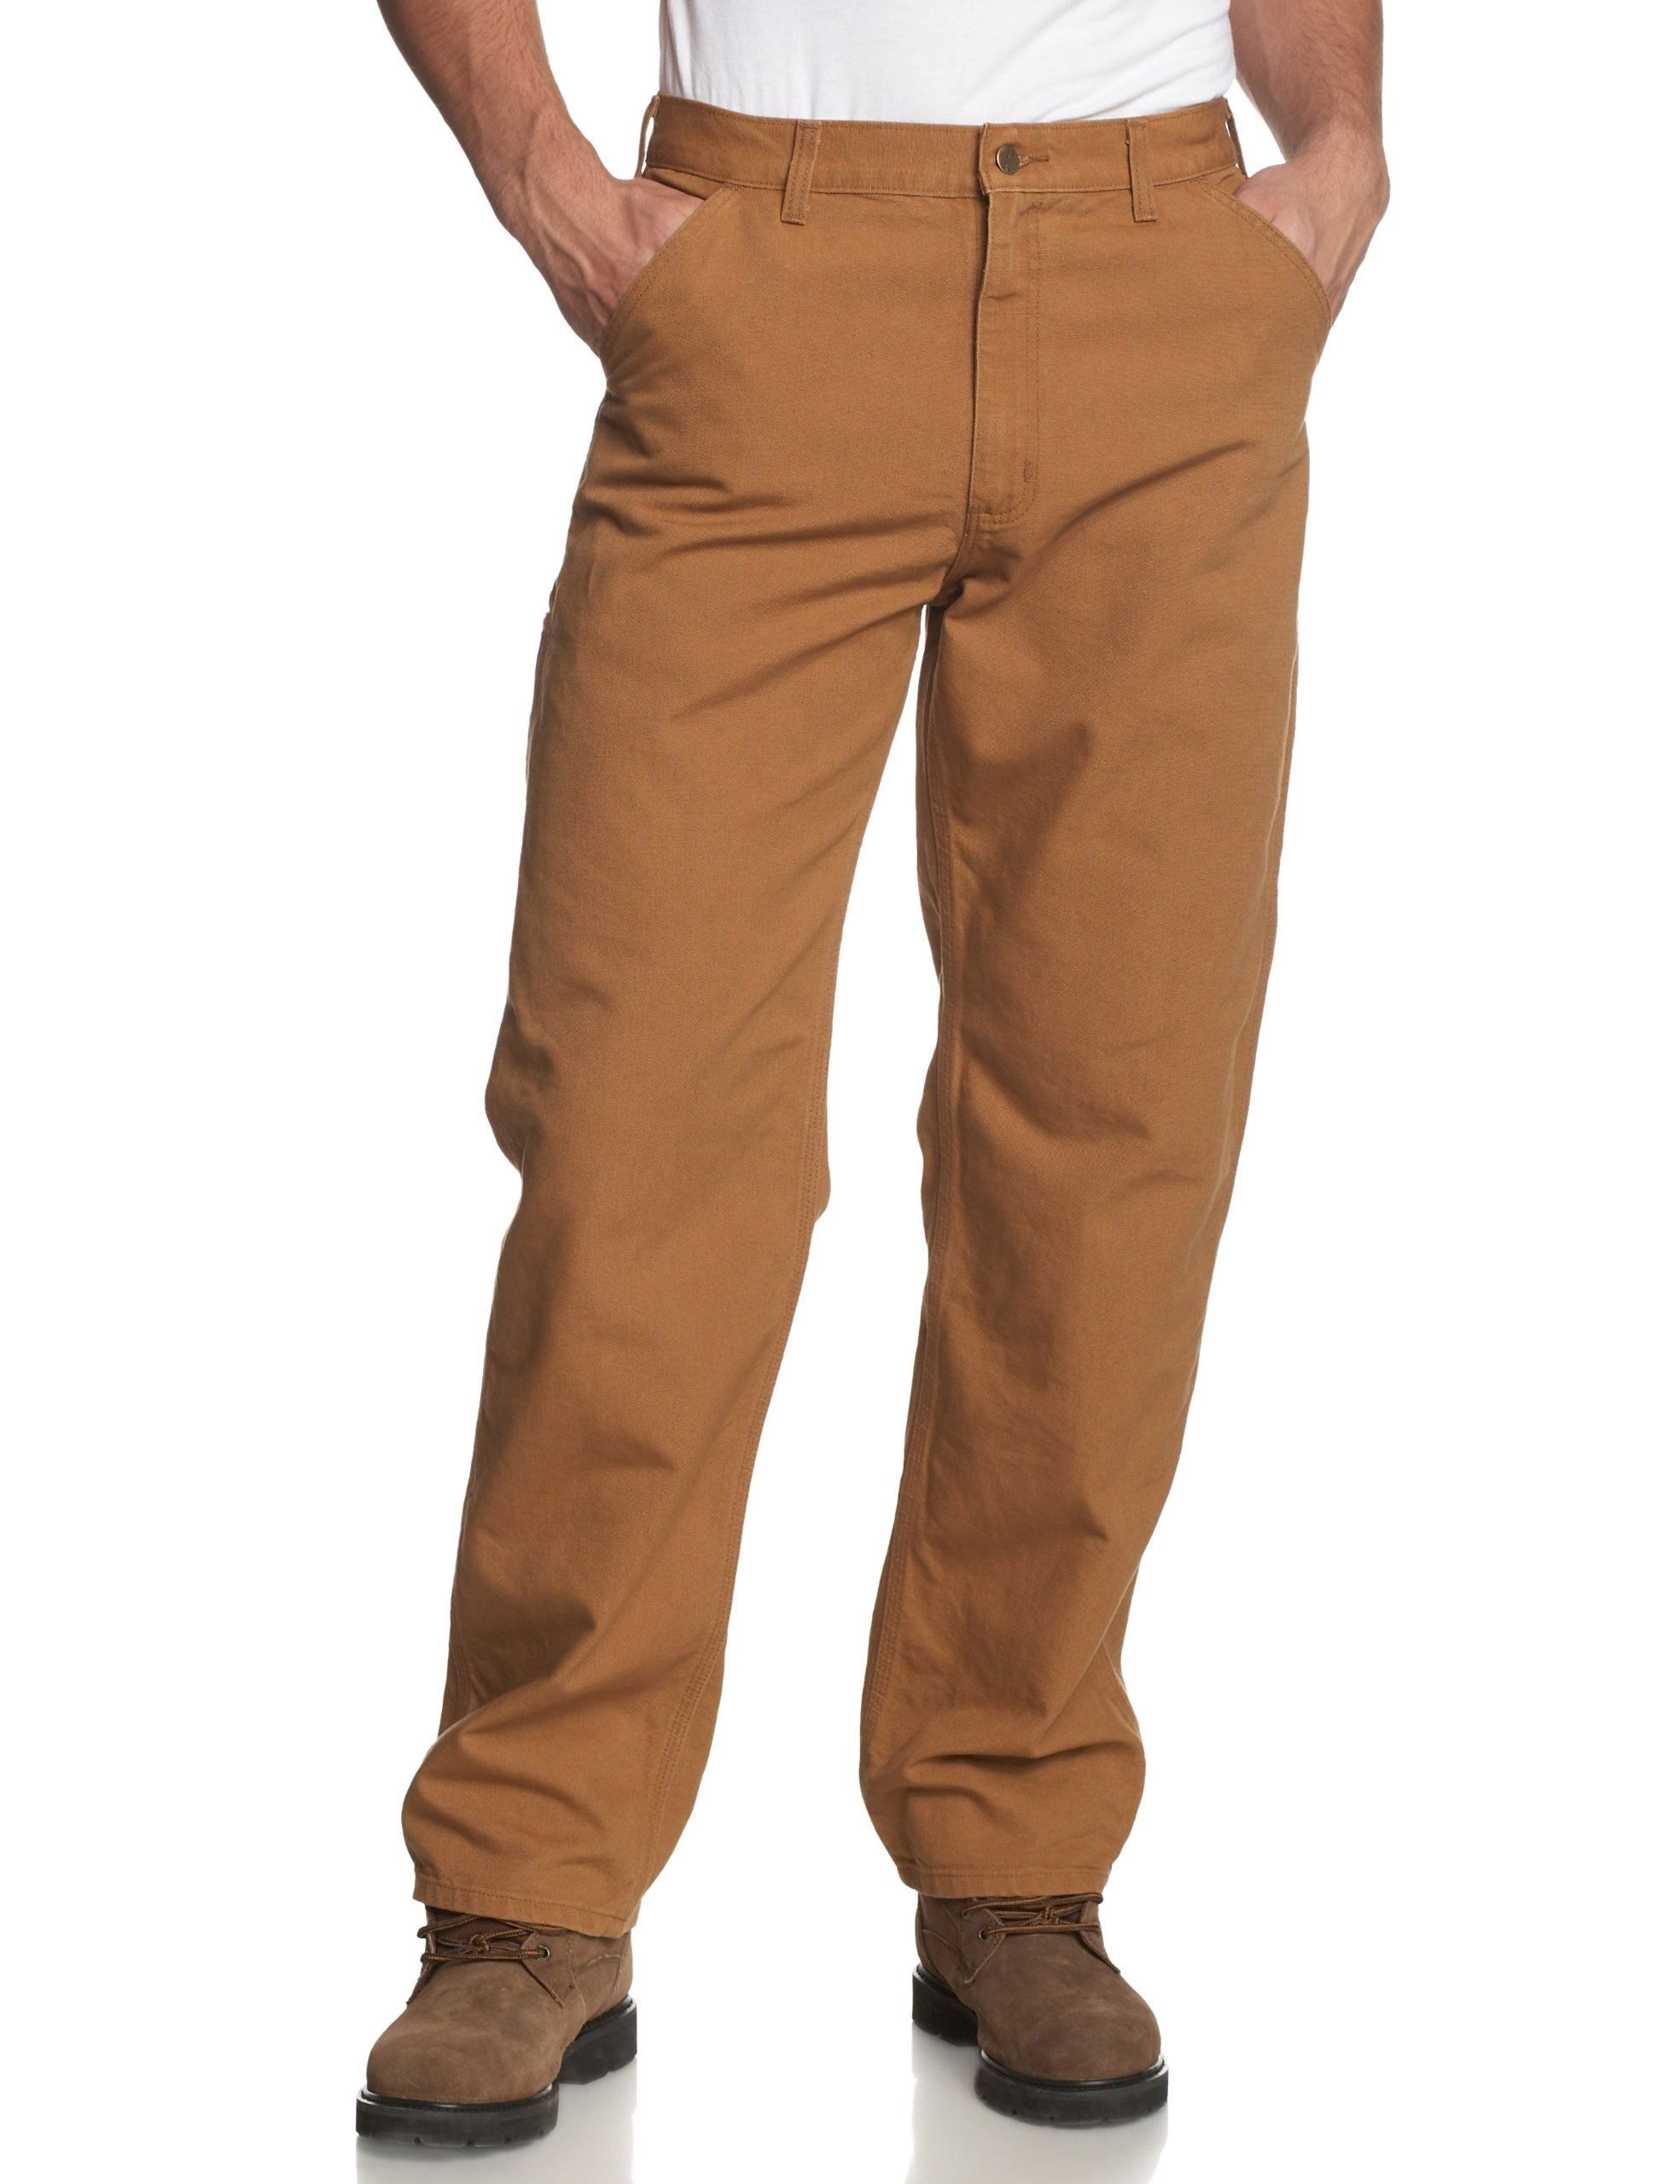 Carhartt Men's Washed Duck Work Dungaree Utility Pant B11, Brown,36 x 32